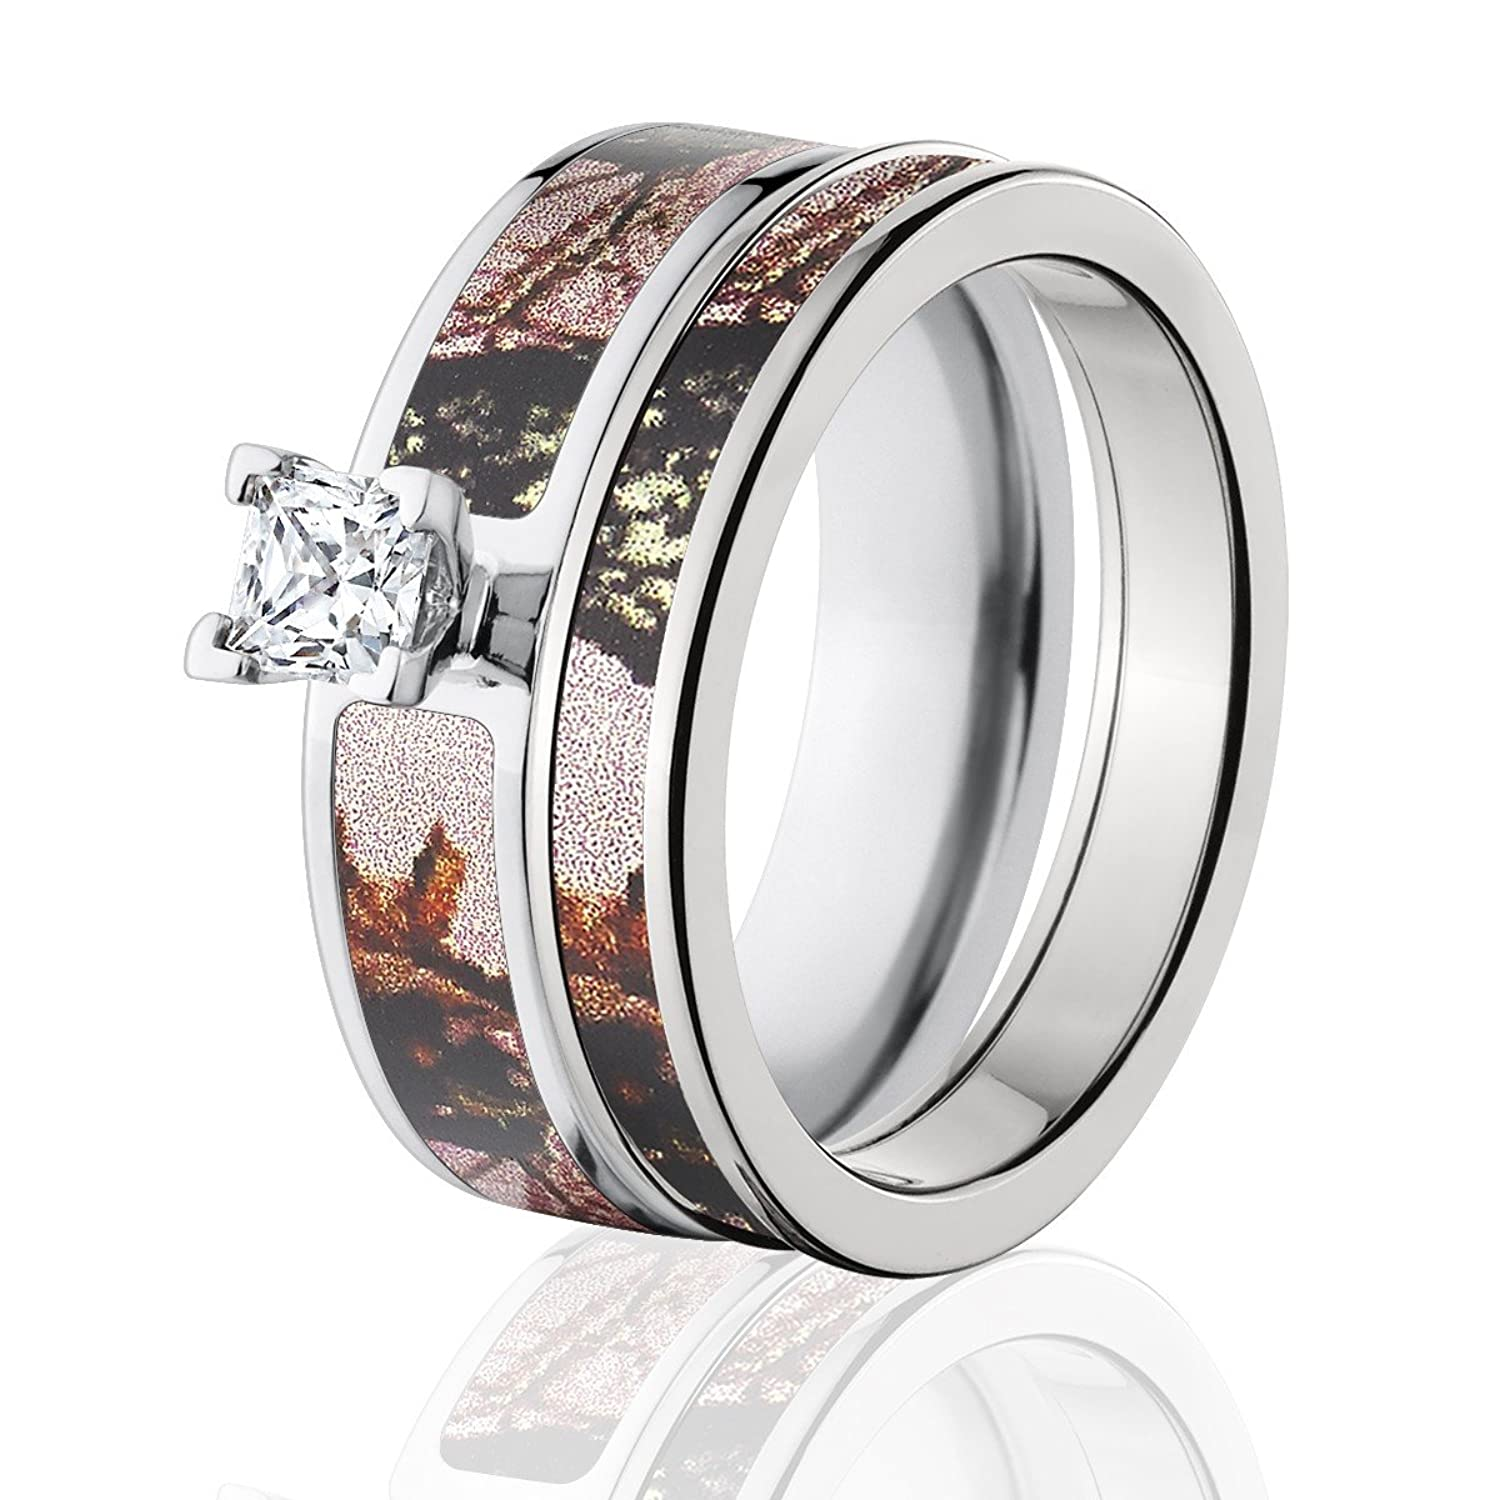 amazoncom mossy oak camo bridal set camo wedding rings pink break up camo rings jewelry - Camo Wedding Rings For Women